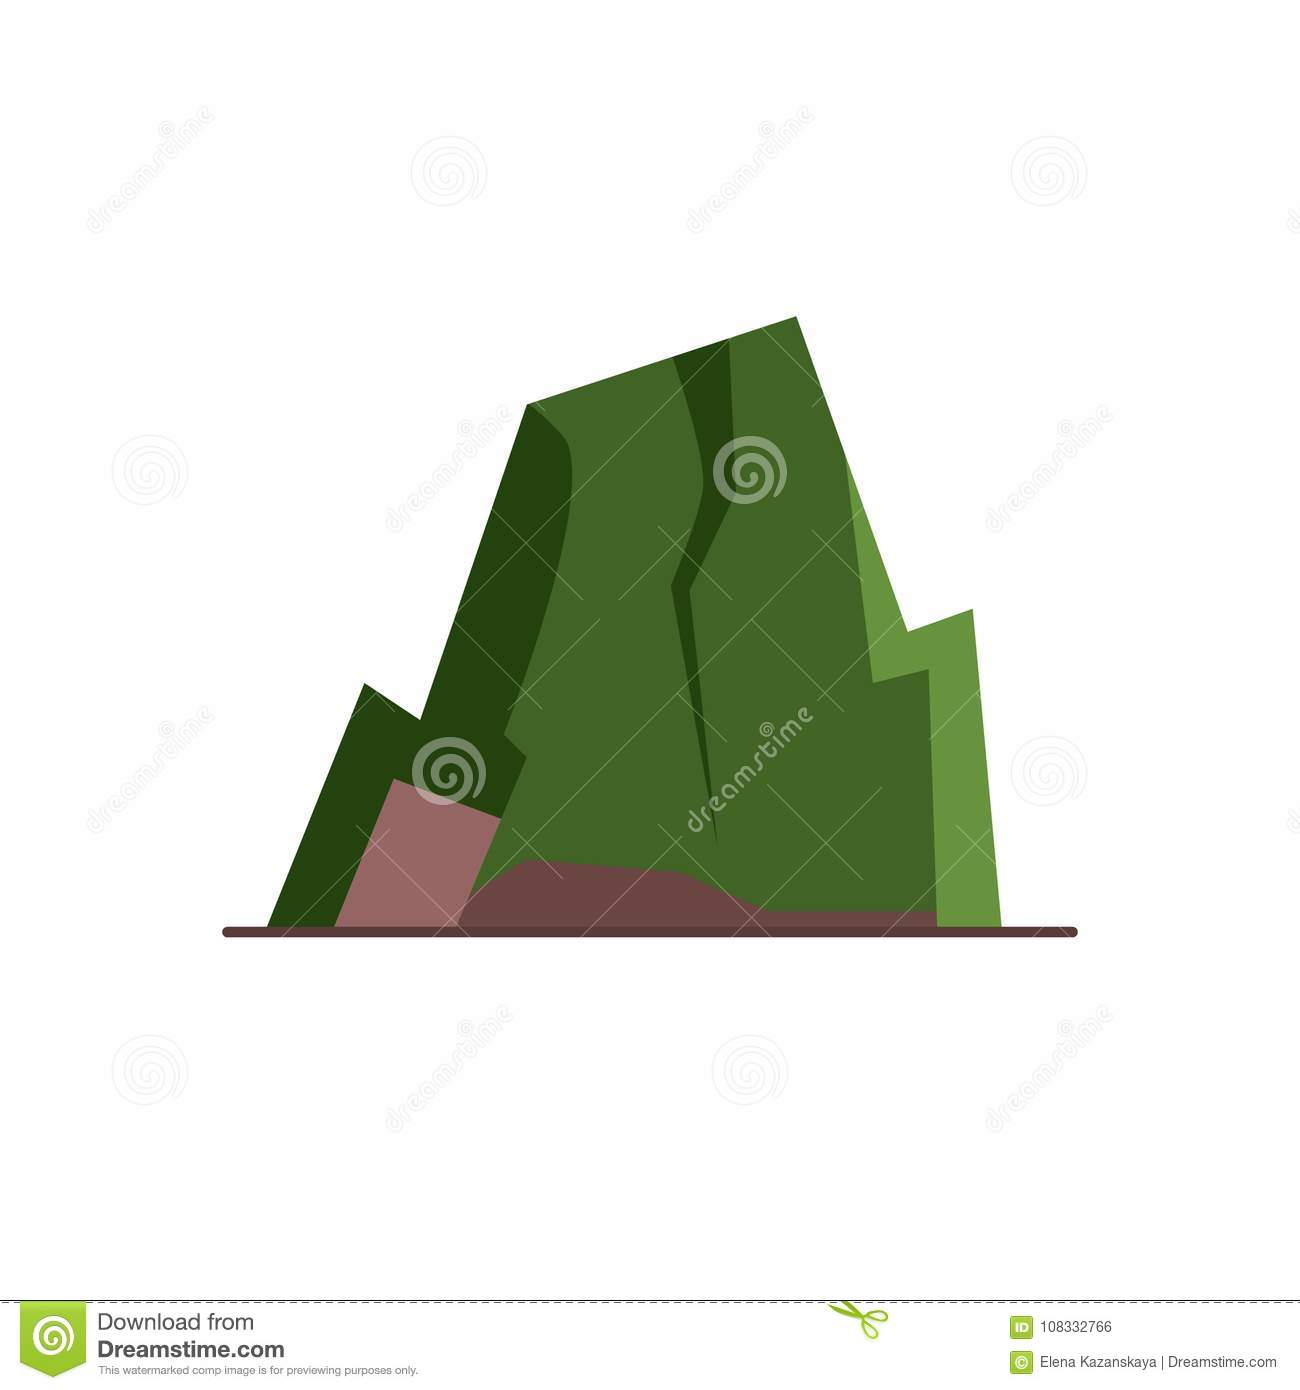 hight resolution of mountain with ledges icon in flat style rock with plateau symbol isolated on white background